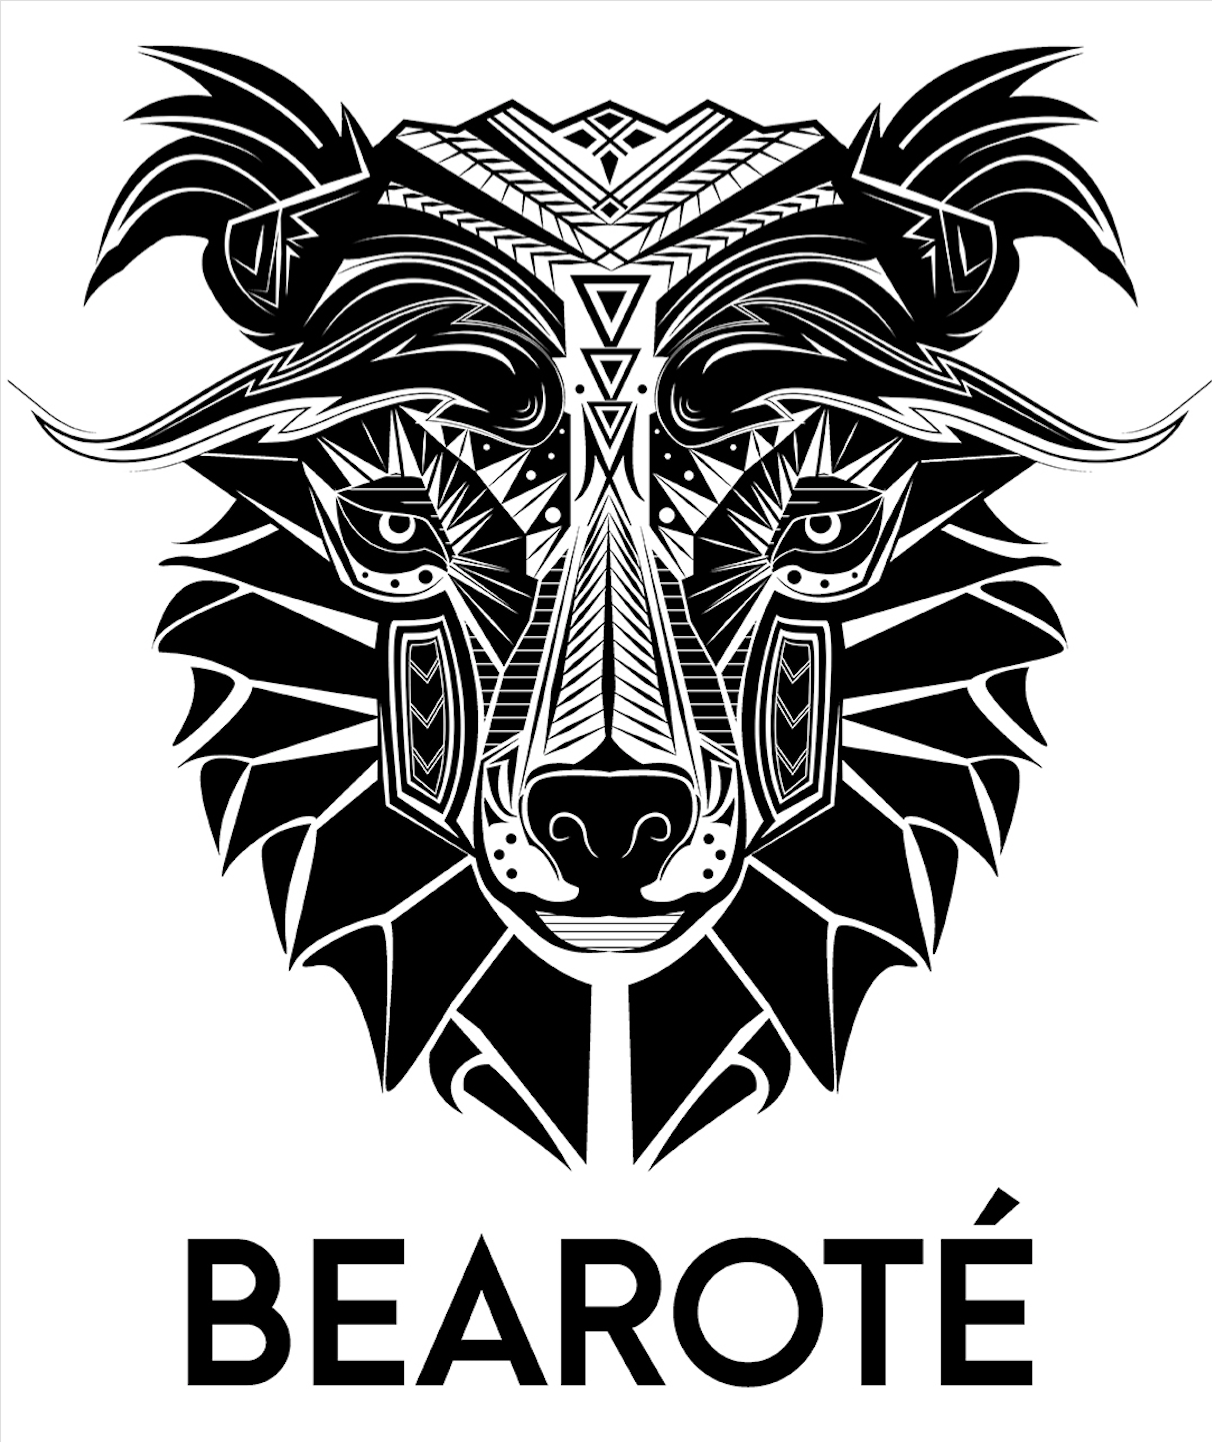 bearote head.png